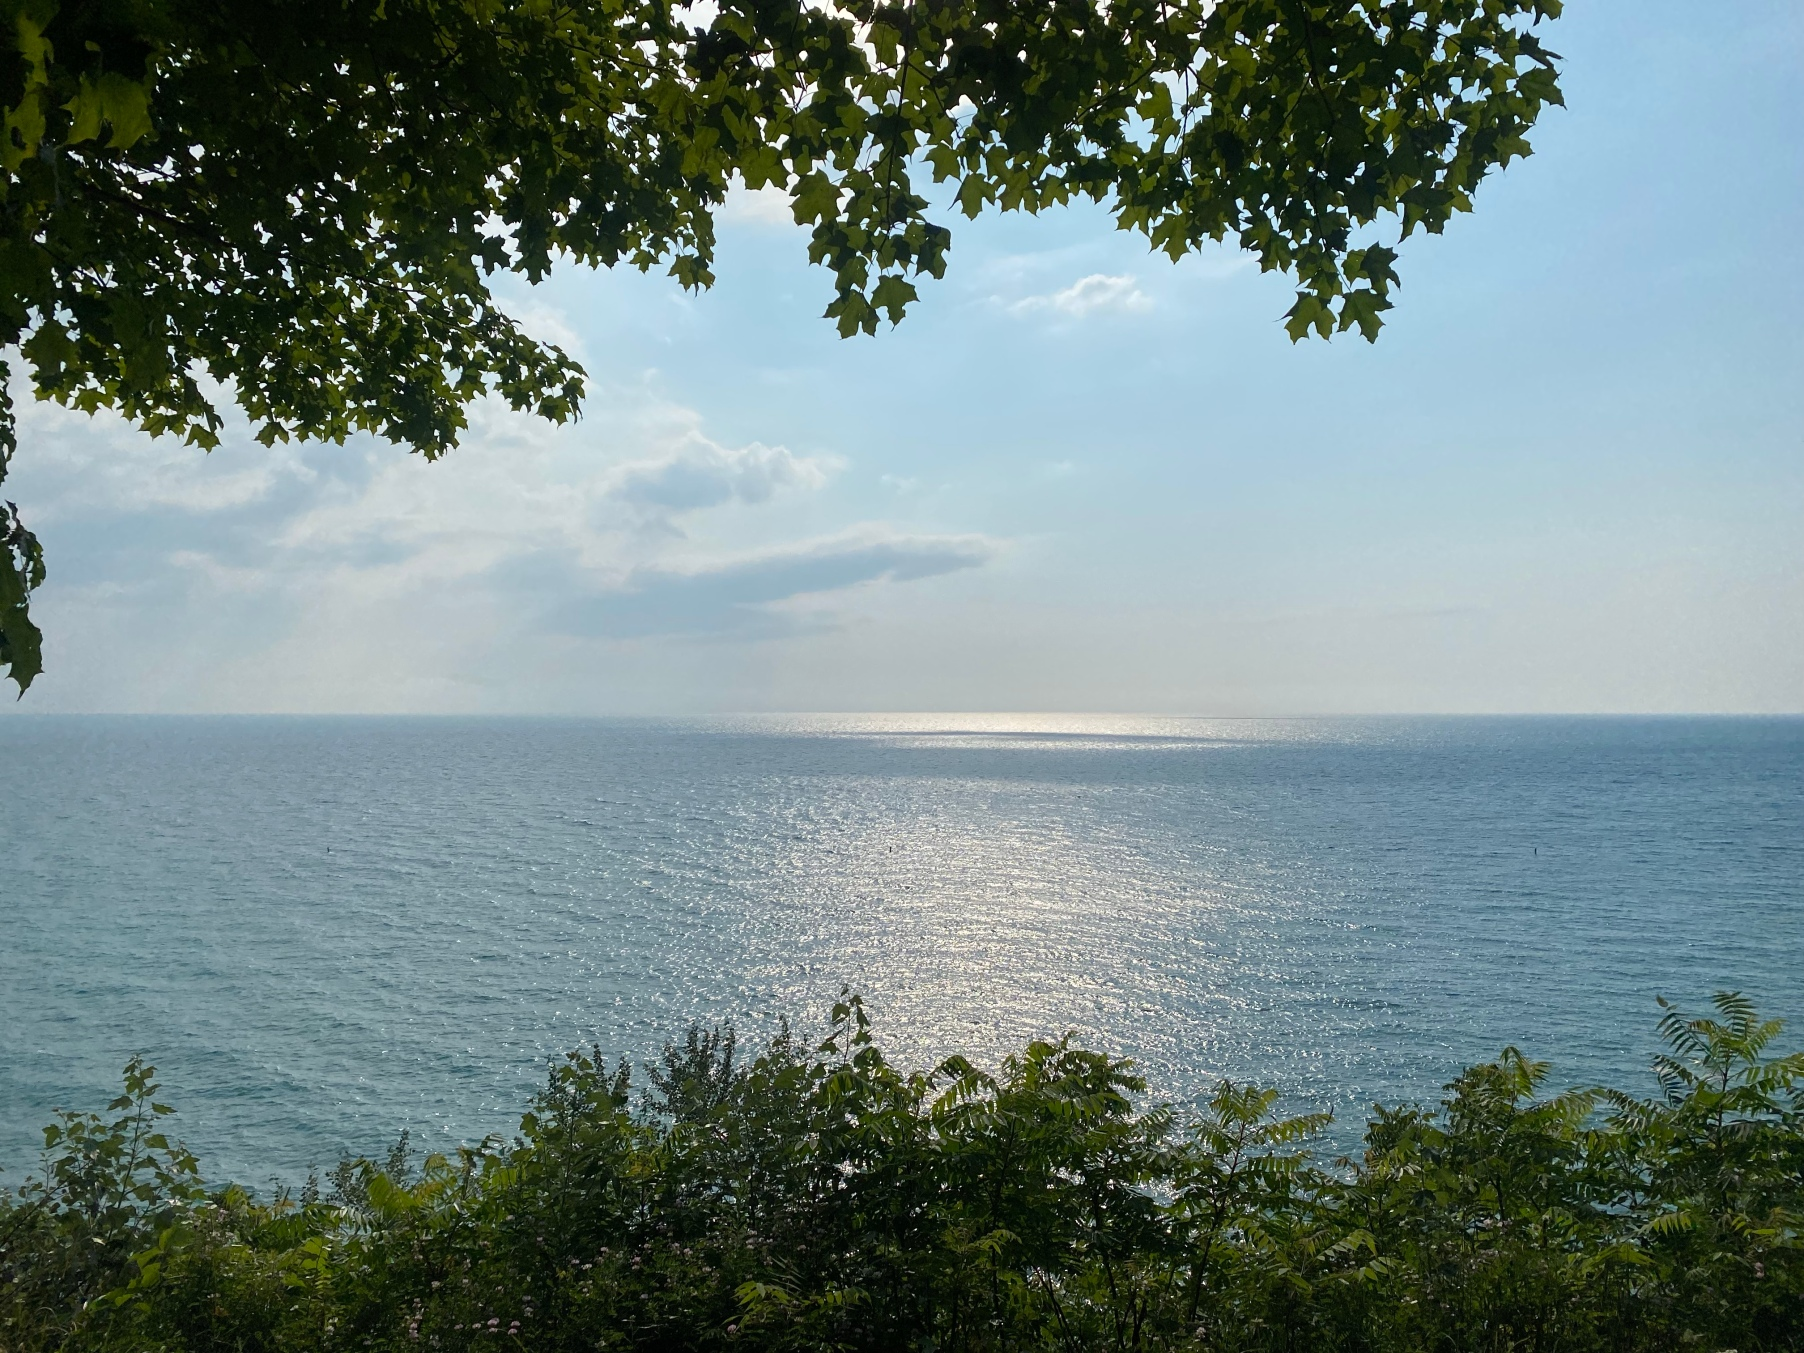 A trip along the Huron Shores will bring you to Bayfield Ontario along Highway 21. This pretty and quaint little village is not to be missed.